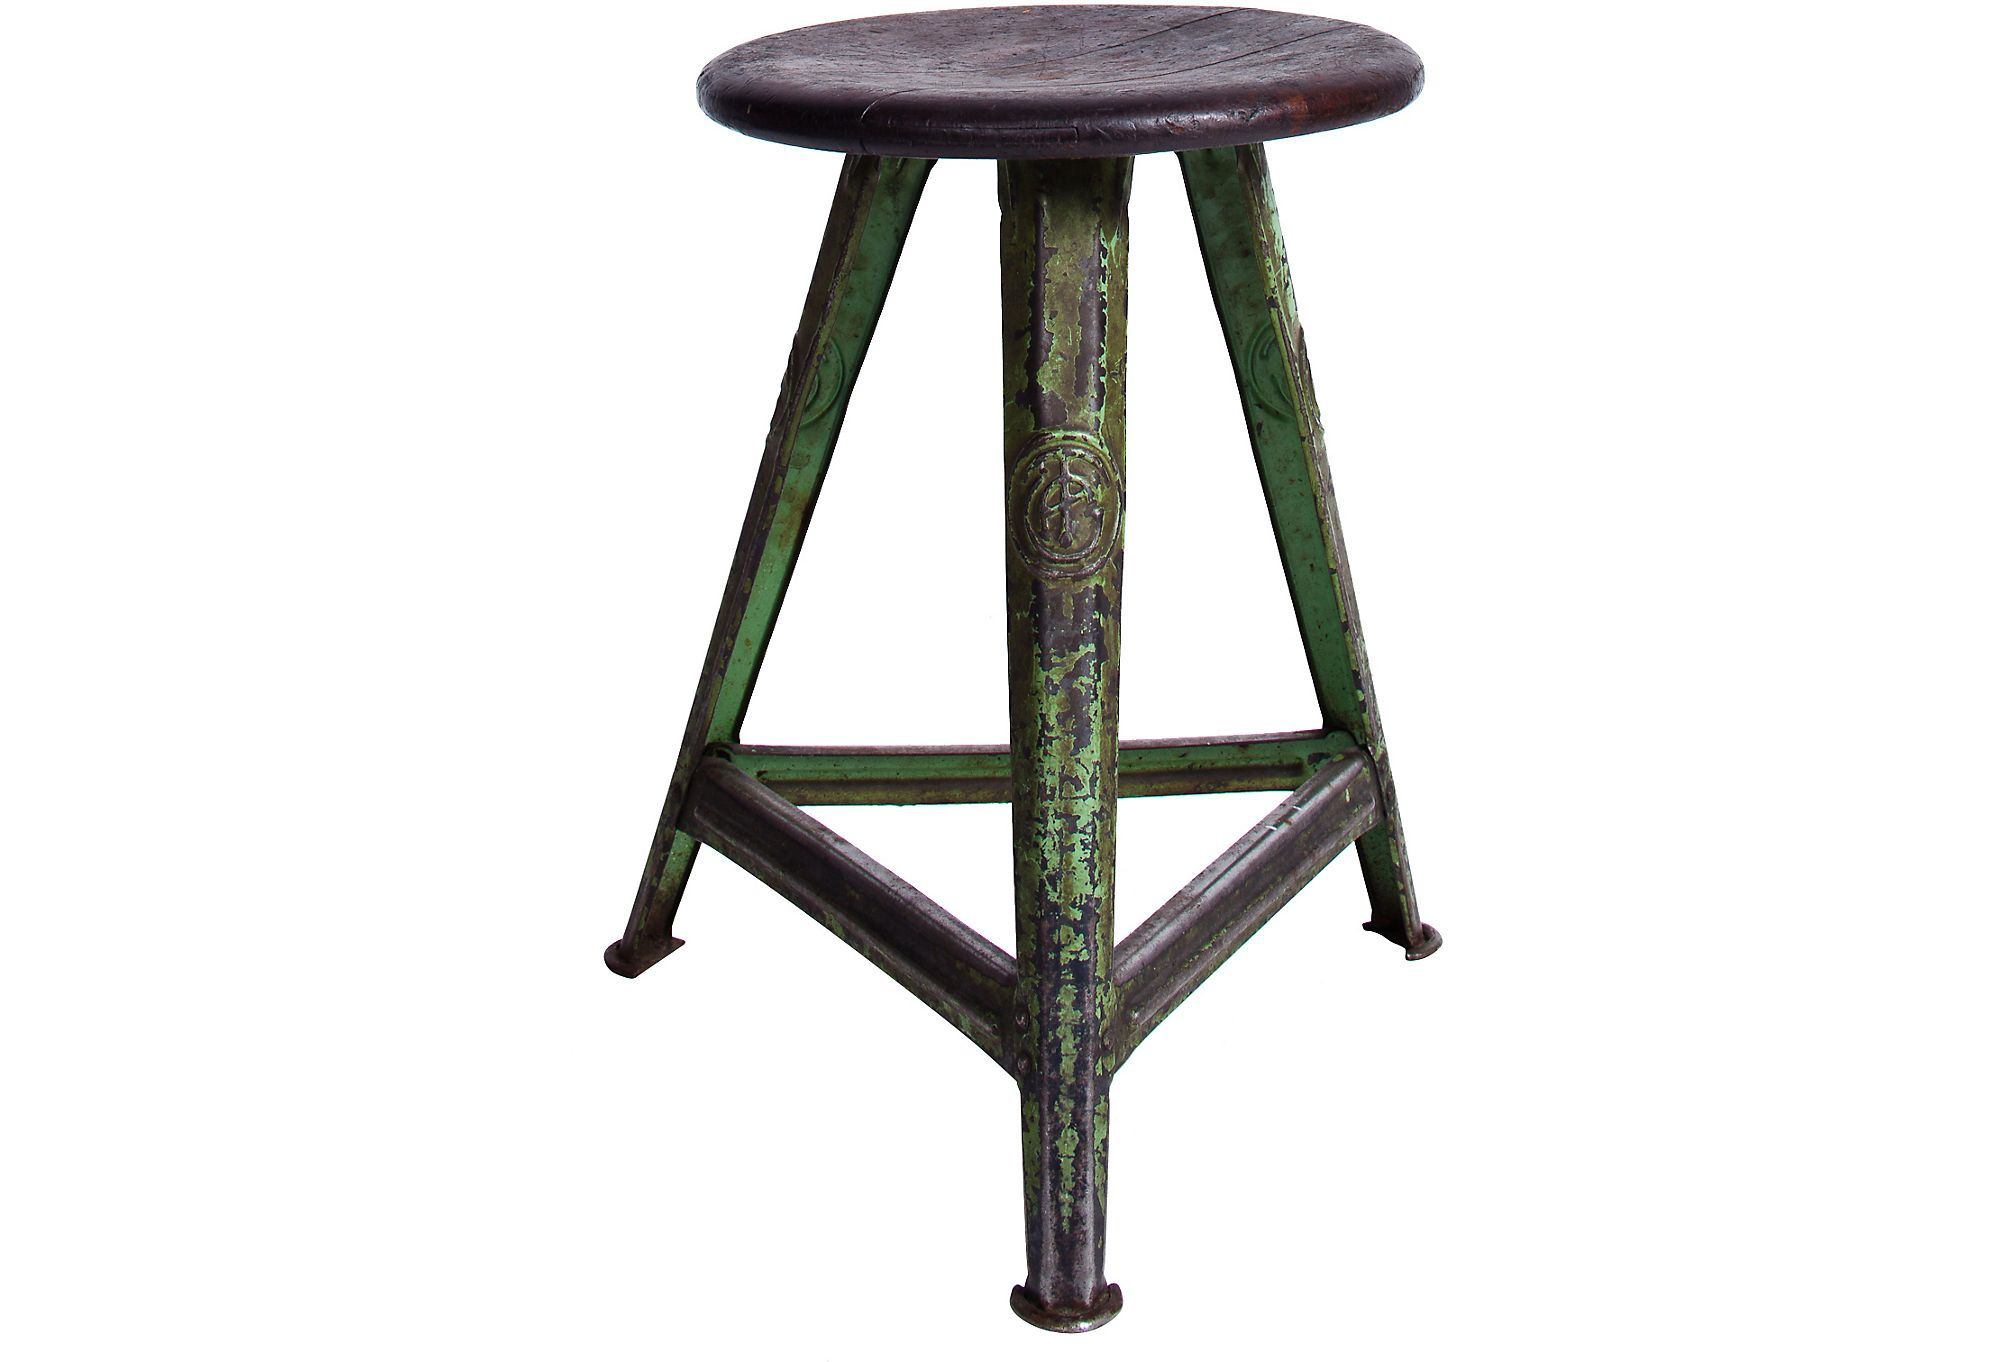 Groovy This Adorable Stool Has A Great Industrial Look With Its Gmtry Best Dining Table And Chair Ideas Images Gmtryco